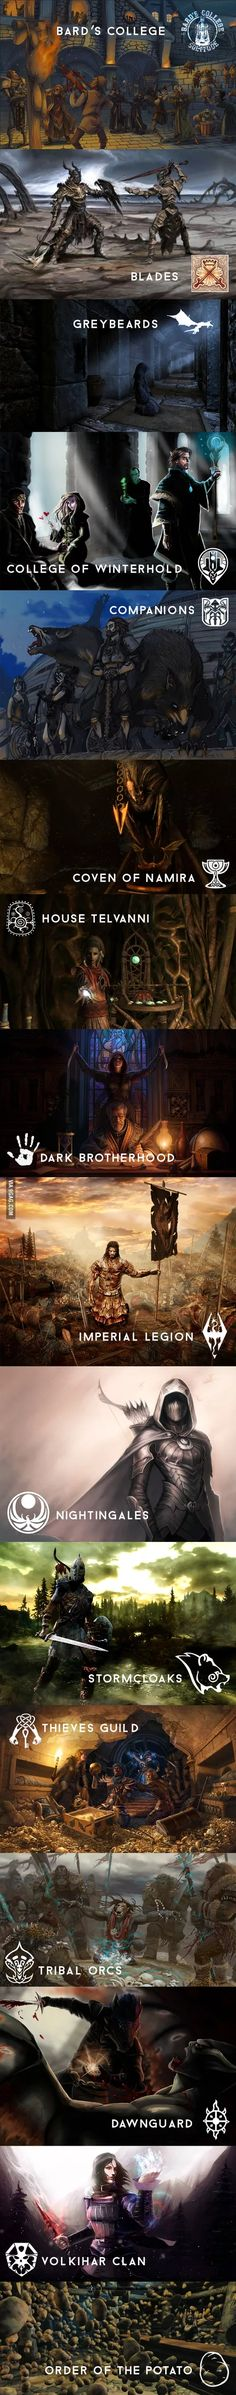 your favorite Skyrim faction? What's your favorite Skyrim faction? Mine is thieves guild an dark brotherhoodWhat's your favorite Skyrim faction? Mine is thieves guild an dark brotherhood The Elder Scrolls, Elder Scrolls Games, Elder Scrolls V Skyrim, Elder Scrolls Online, Video Game Memes, Video Games Funny, Funny Games, Dragon Age, Oblivion